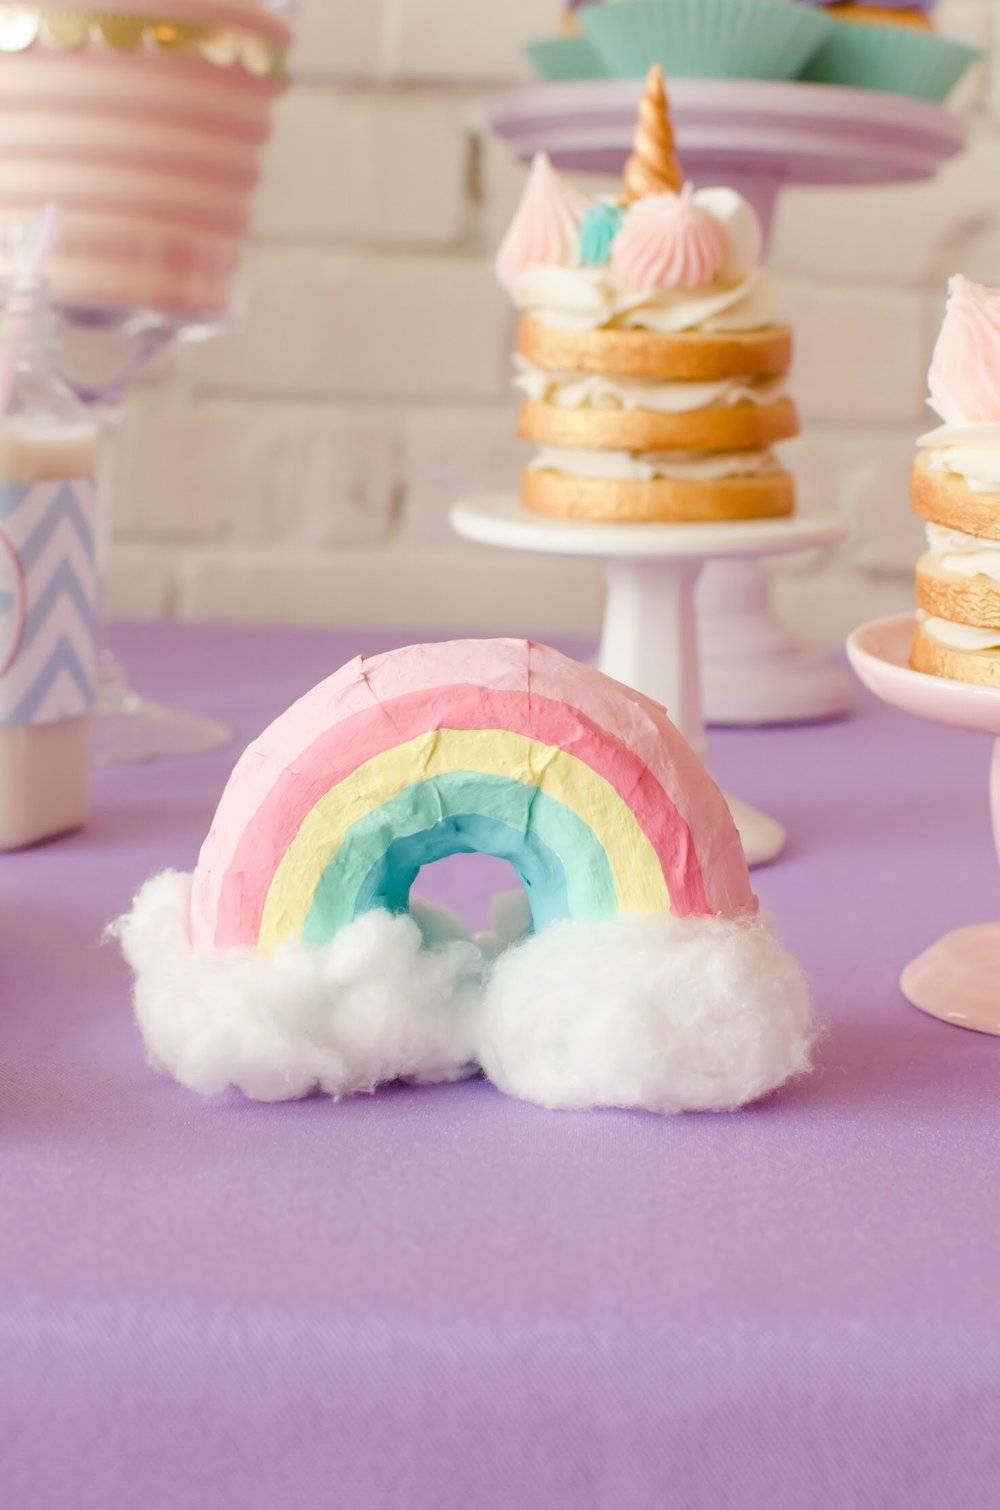 Rainbow paper mâché project from a pastel unicorn birthday party. See more from this unicorn rainbow party at Mint Event Design www.minteventdesign.com #unicornparty #unicornbirthday #birthdayparty #birthdaypartyideas